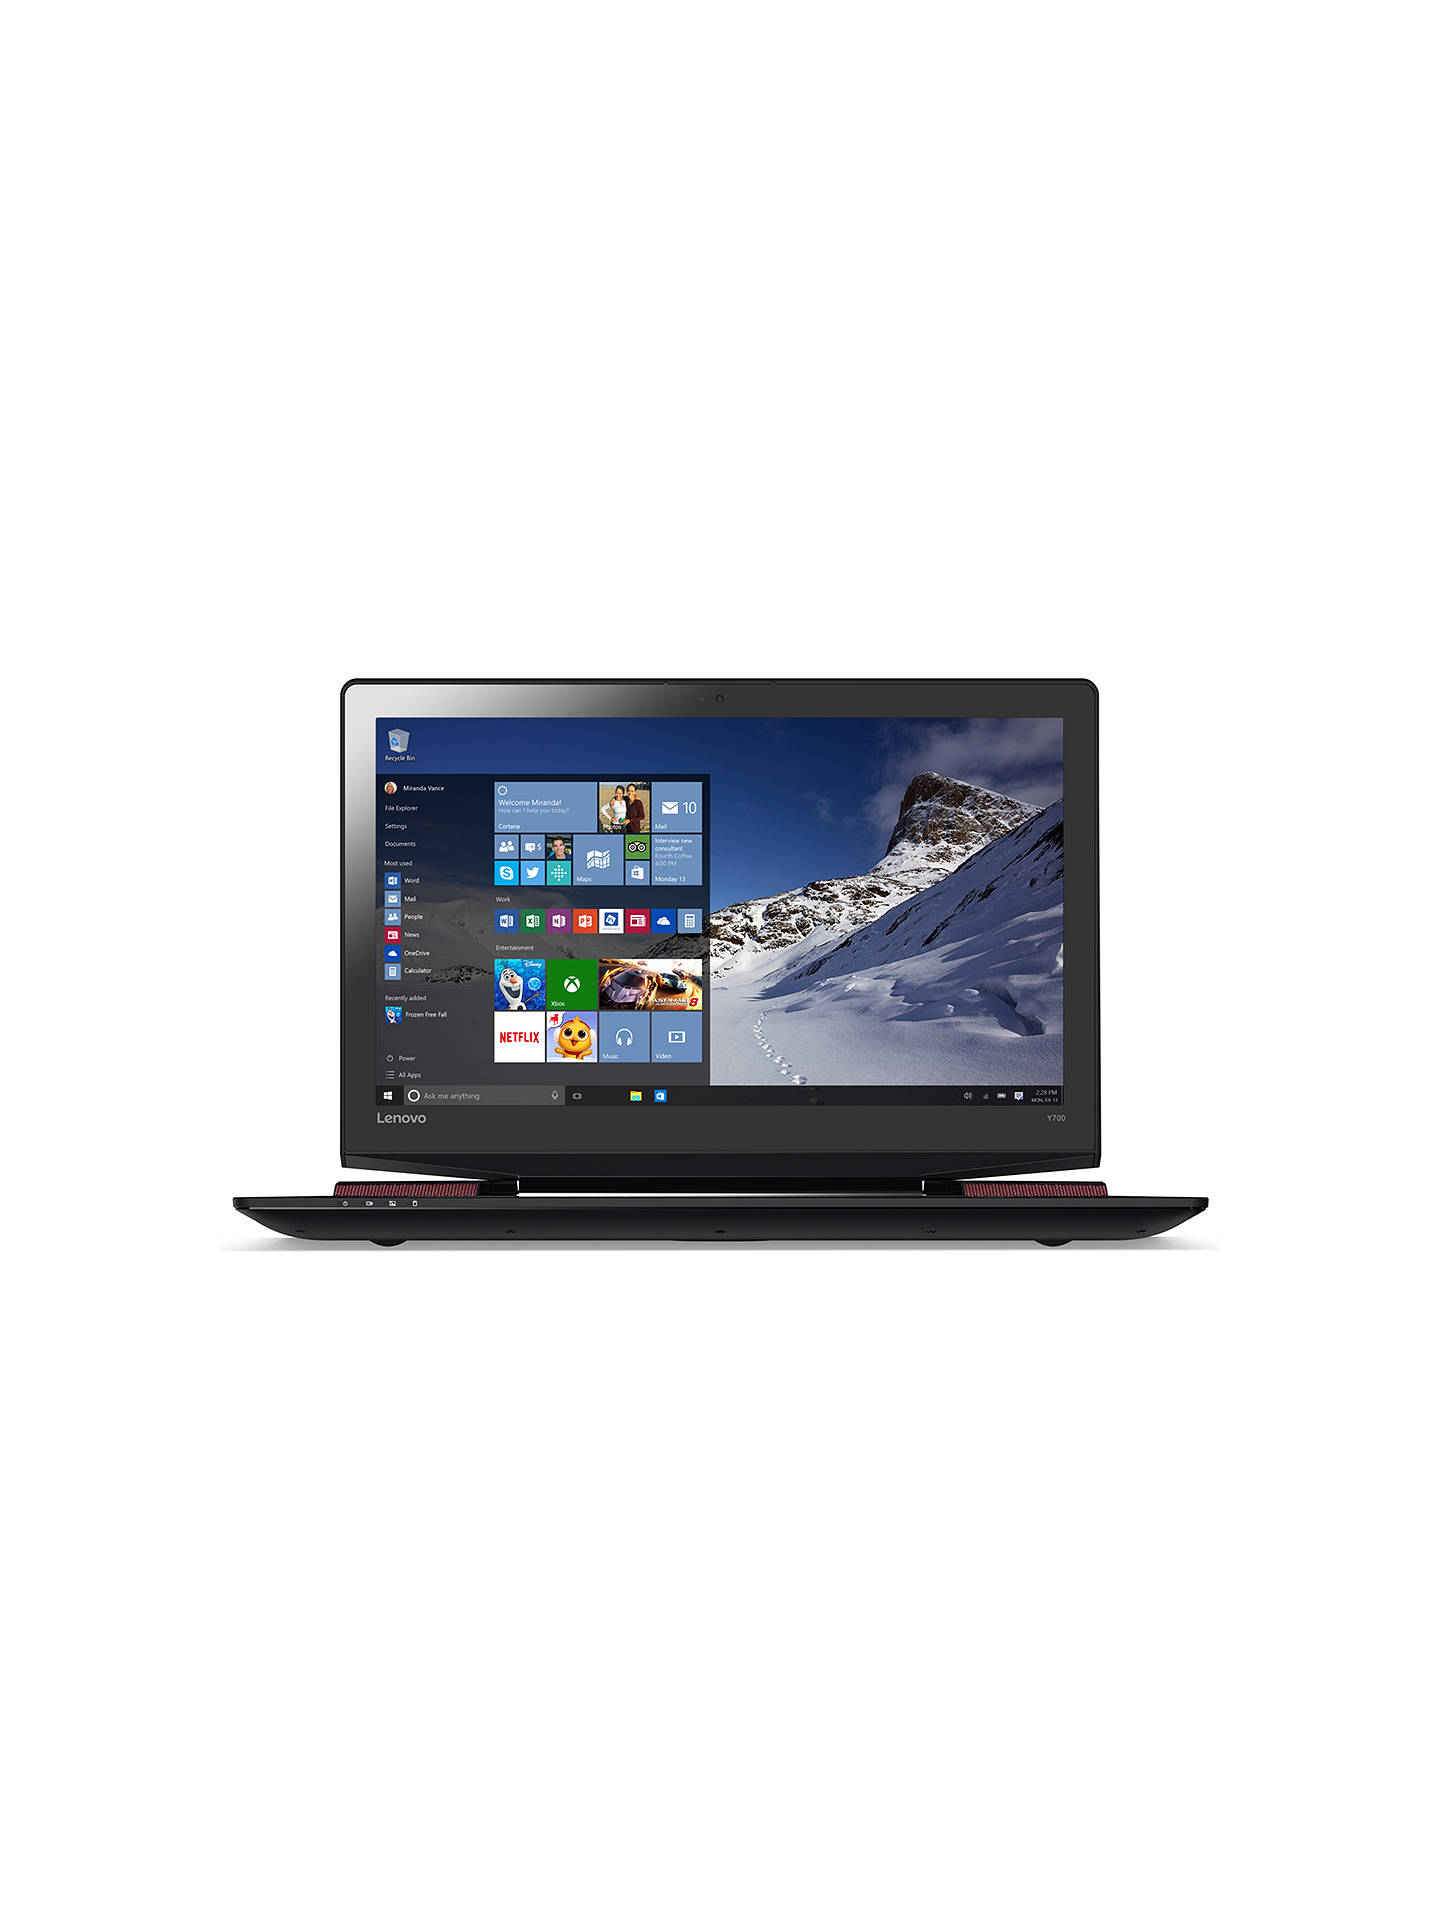 Lenovo Ideapad Y700 Gaming Laptop, Intel Core i7, 16GB RAM, 256GB